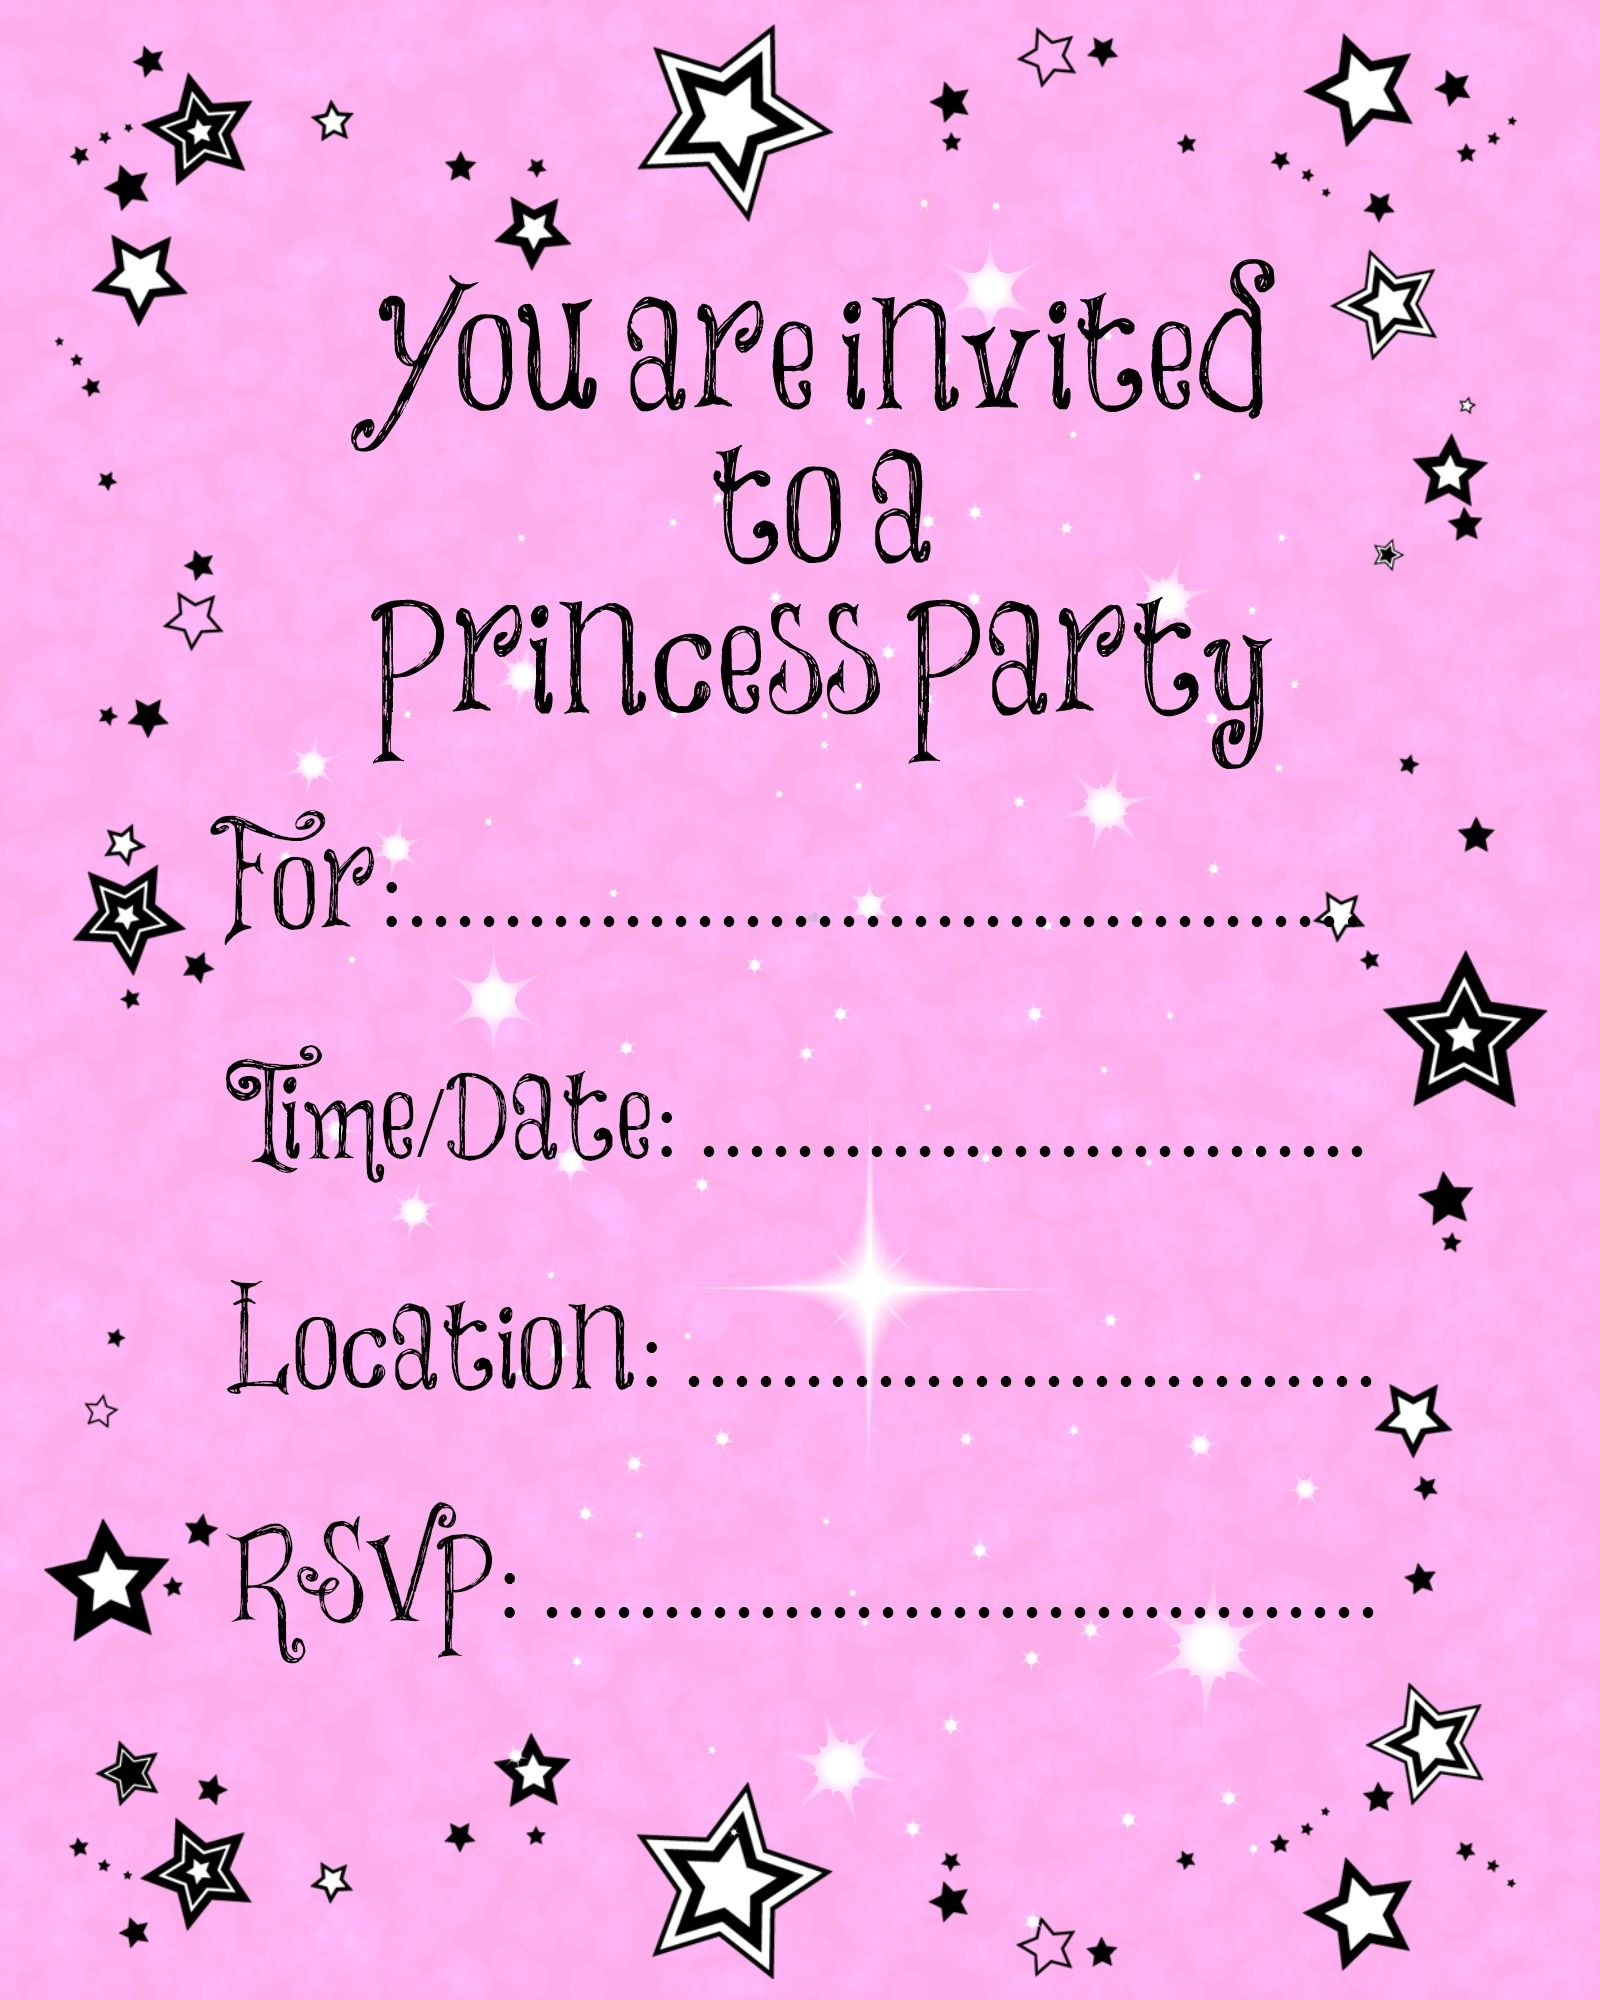 Free printable party invitations birthday invitation pinterest free printable party invitations filmwisefo Gallery